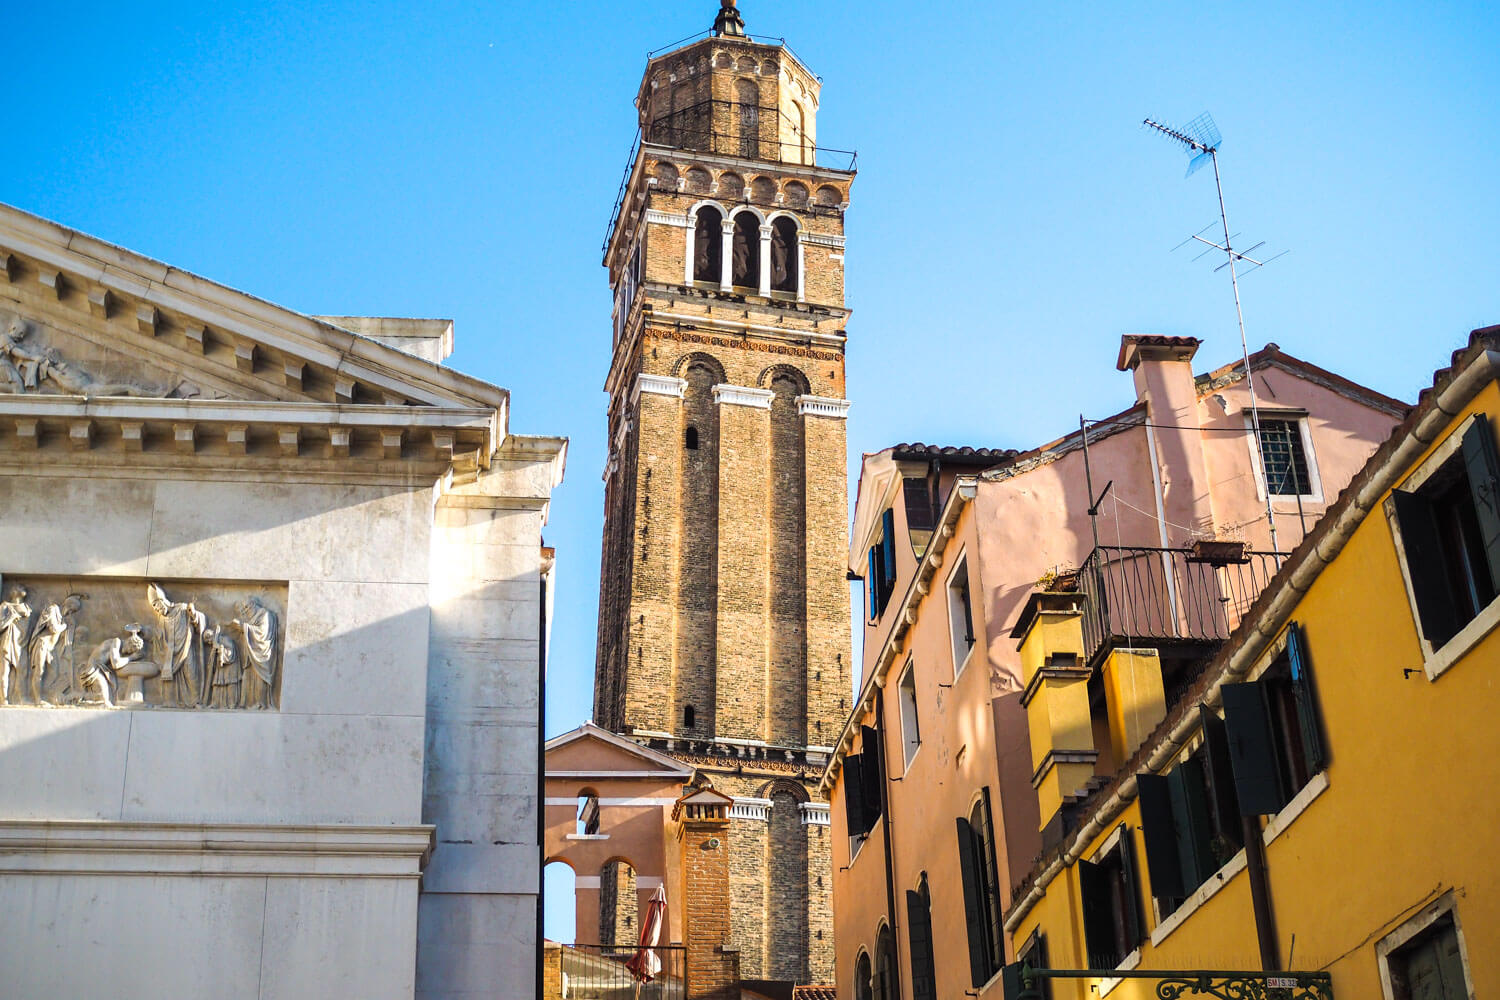 Venice, Tower, travel photography